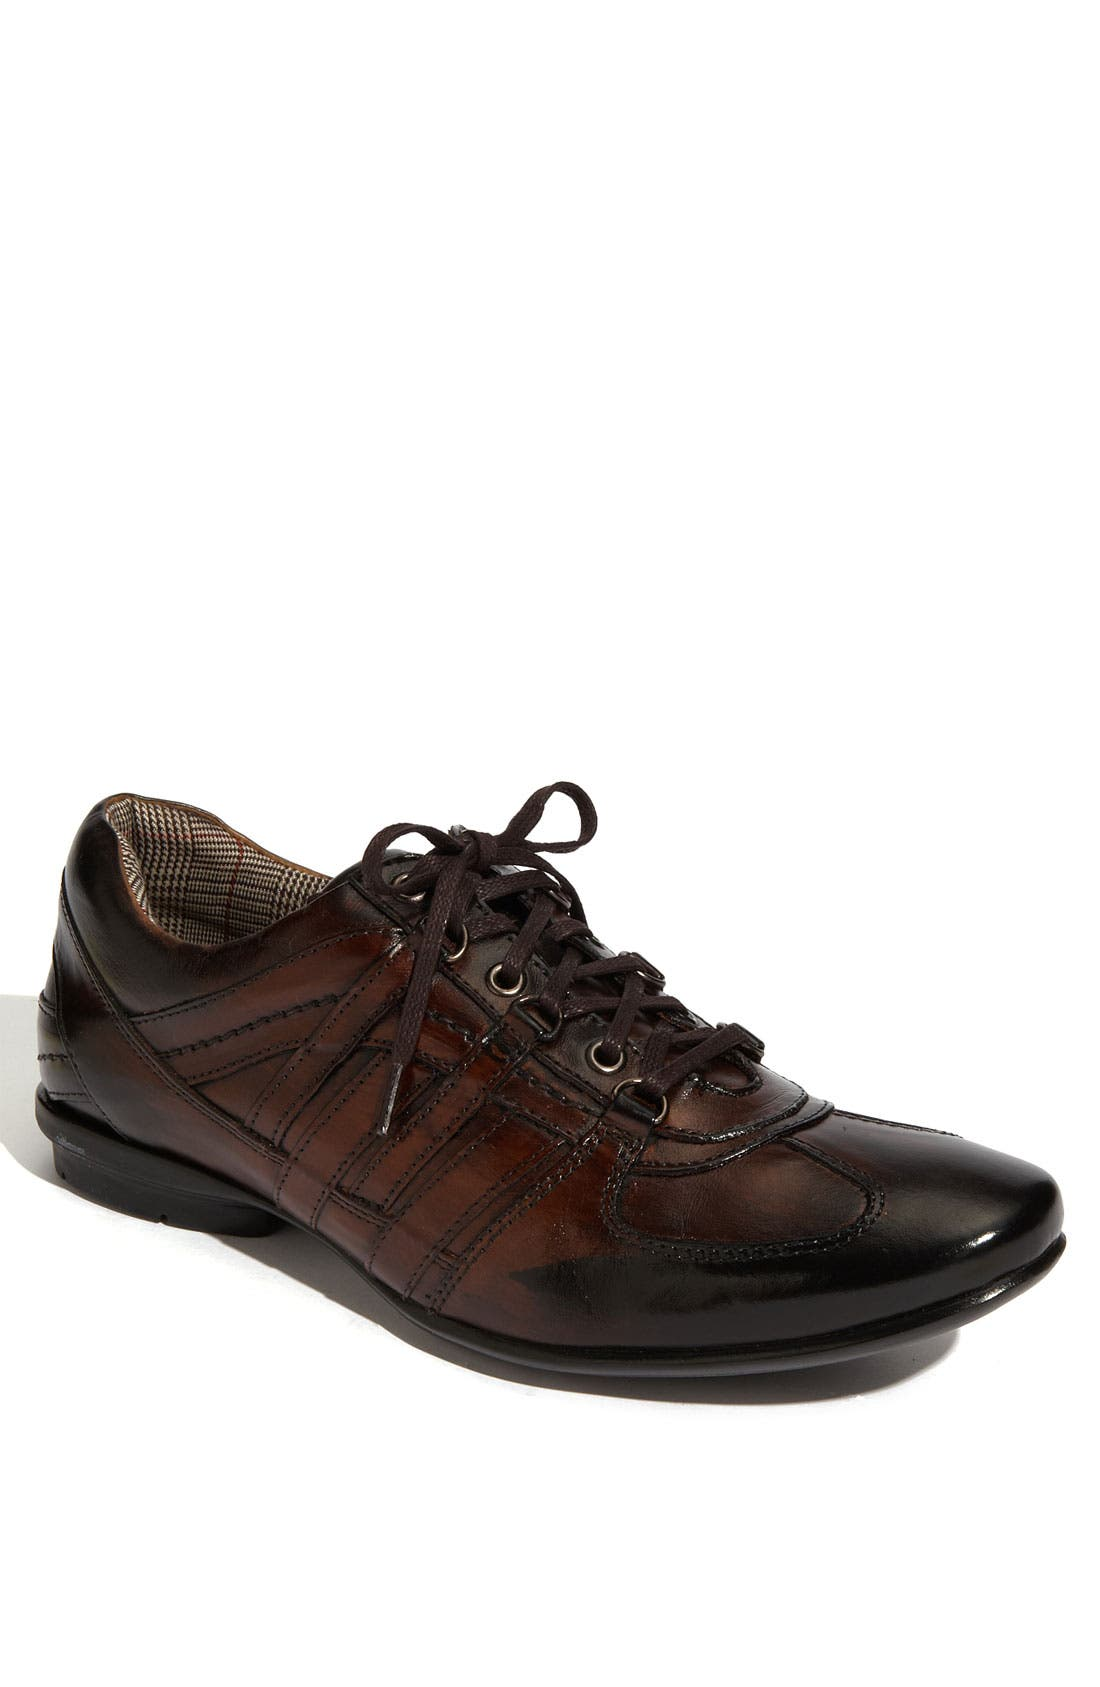 Alternate Image 1 Selected - Bacco Bucci 'Marquez' Sneaker